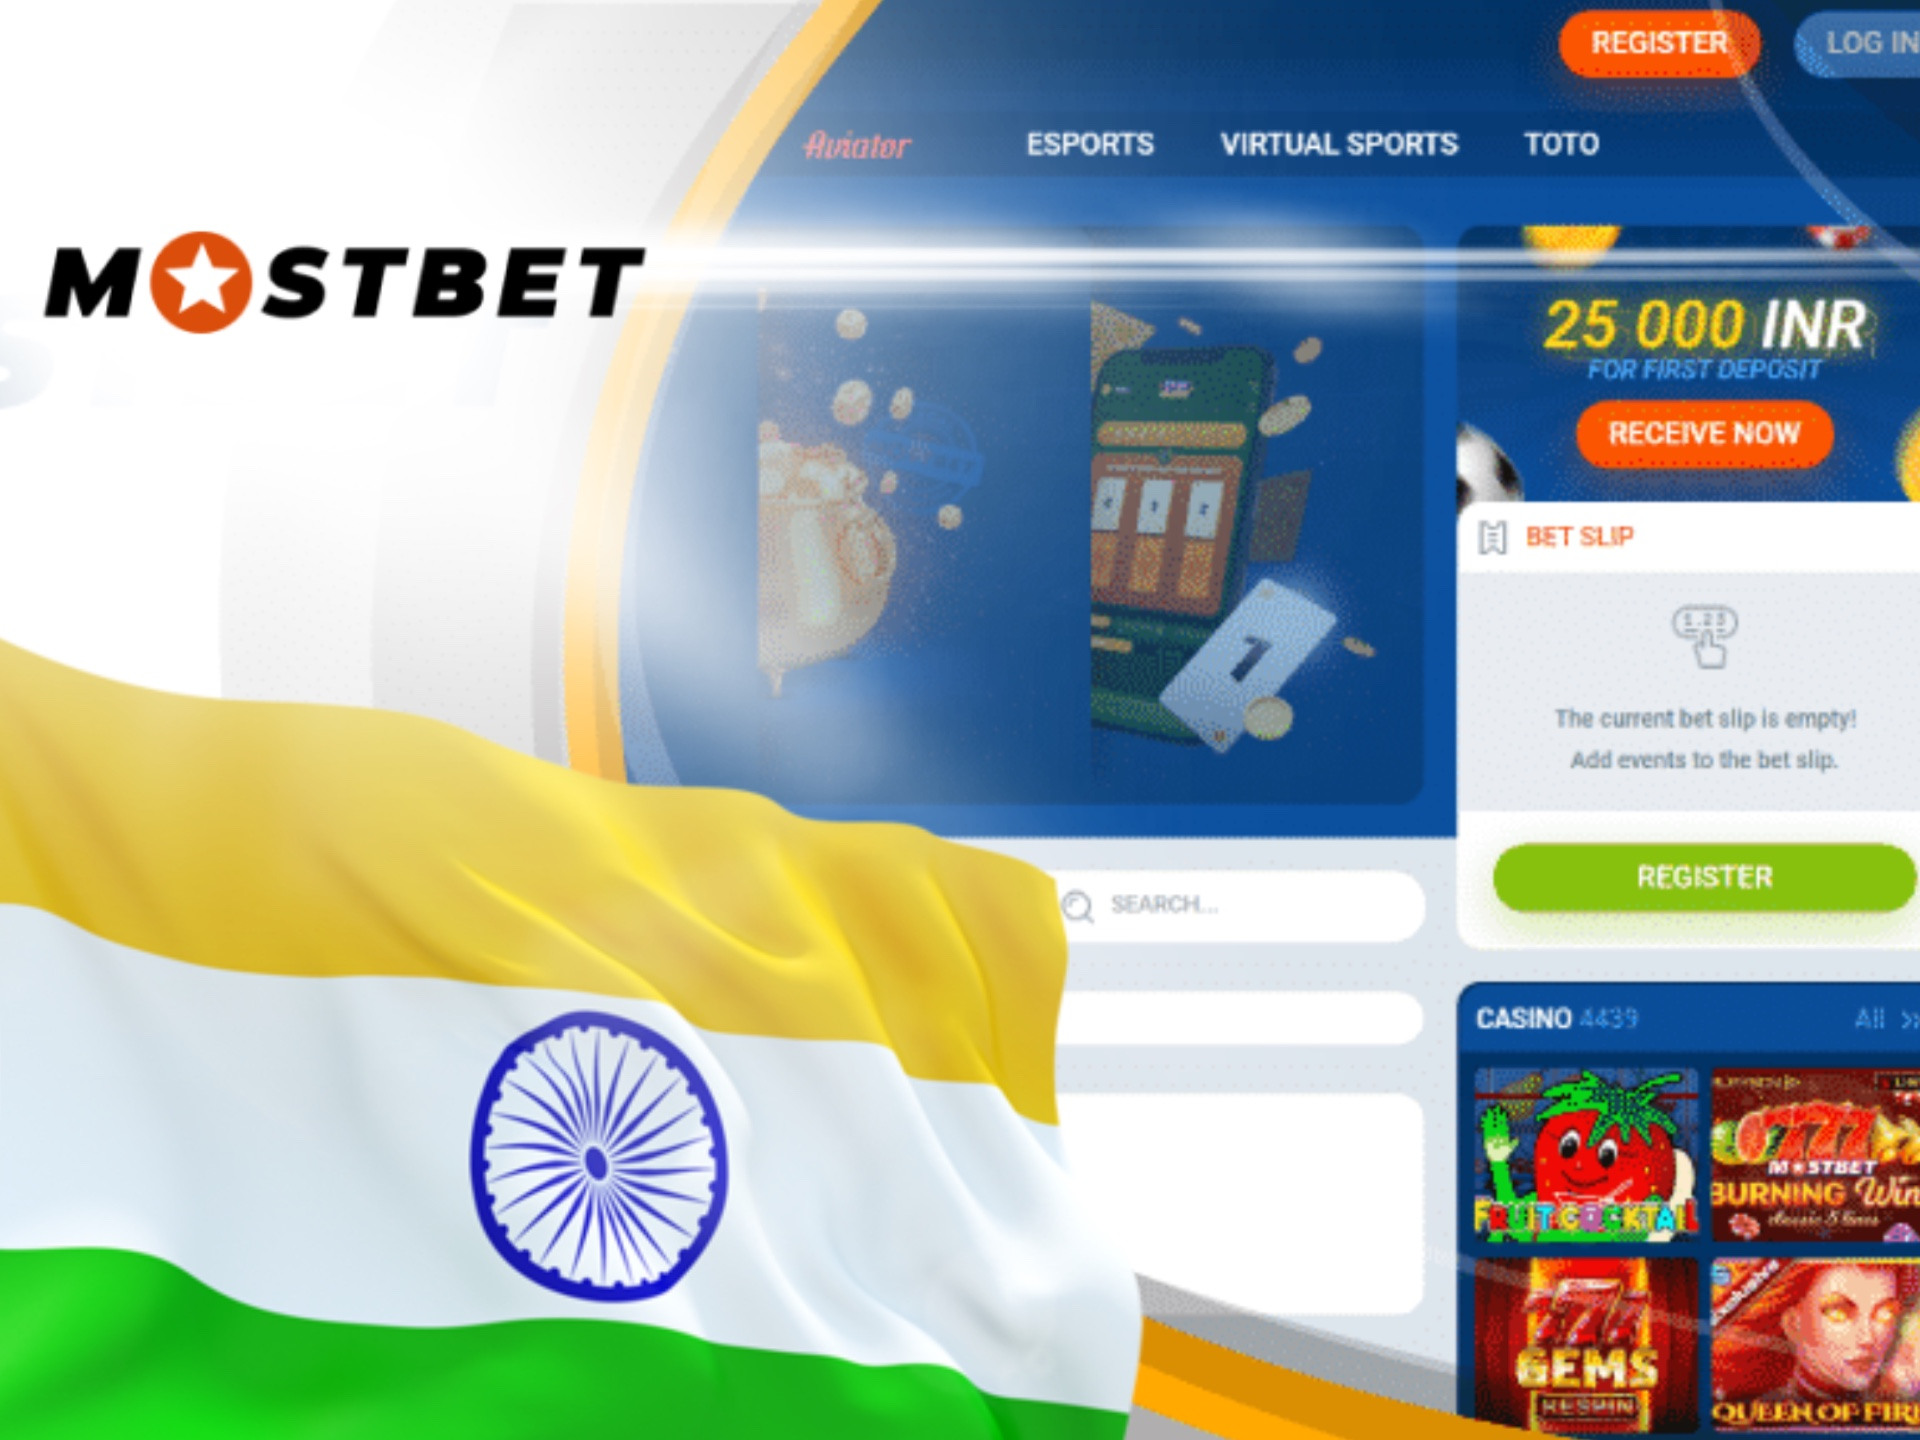 Mostbet is absoluteley legal for bettors from India.